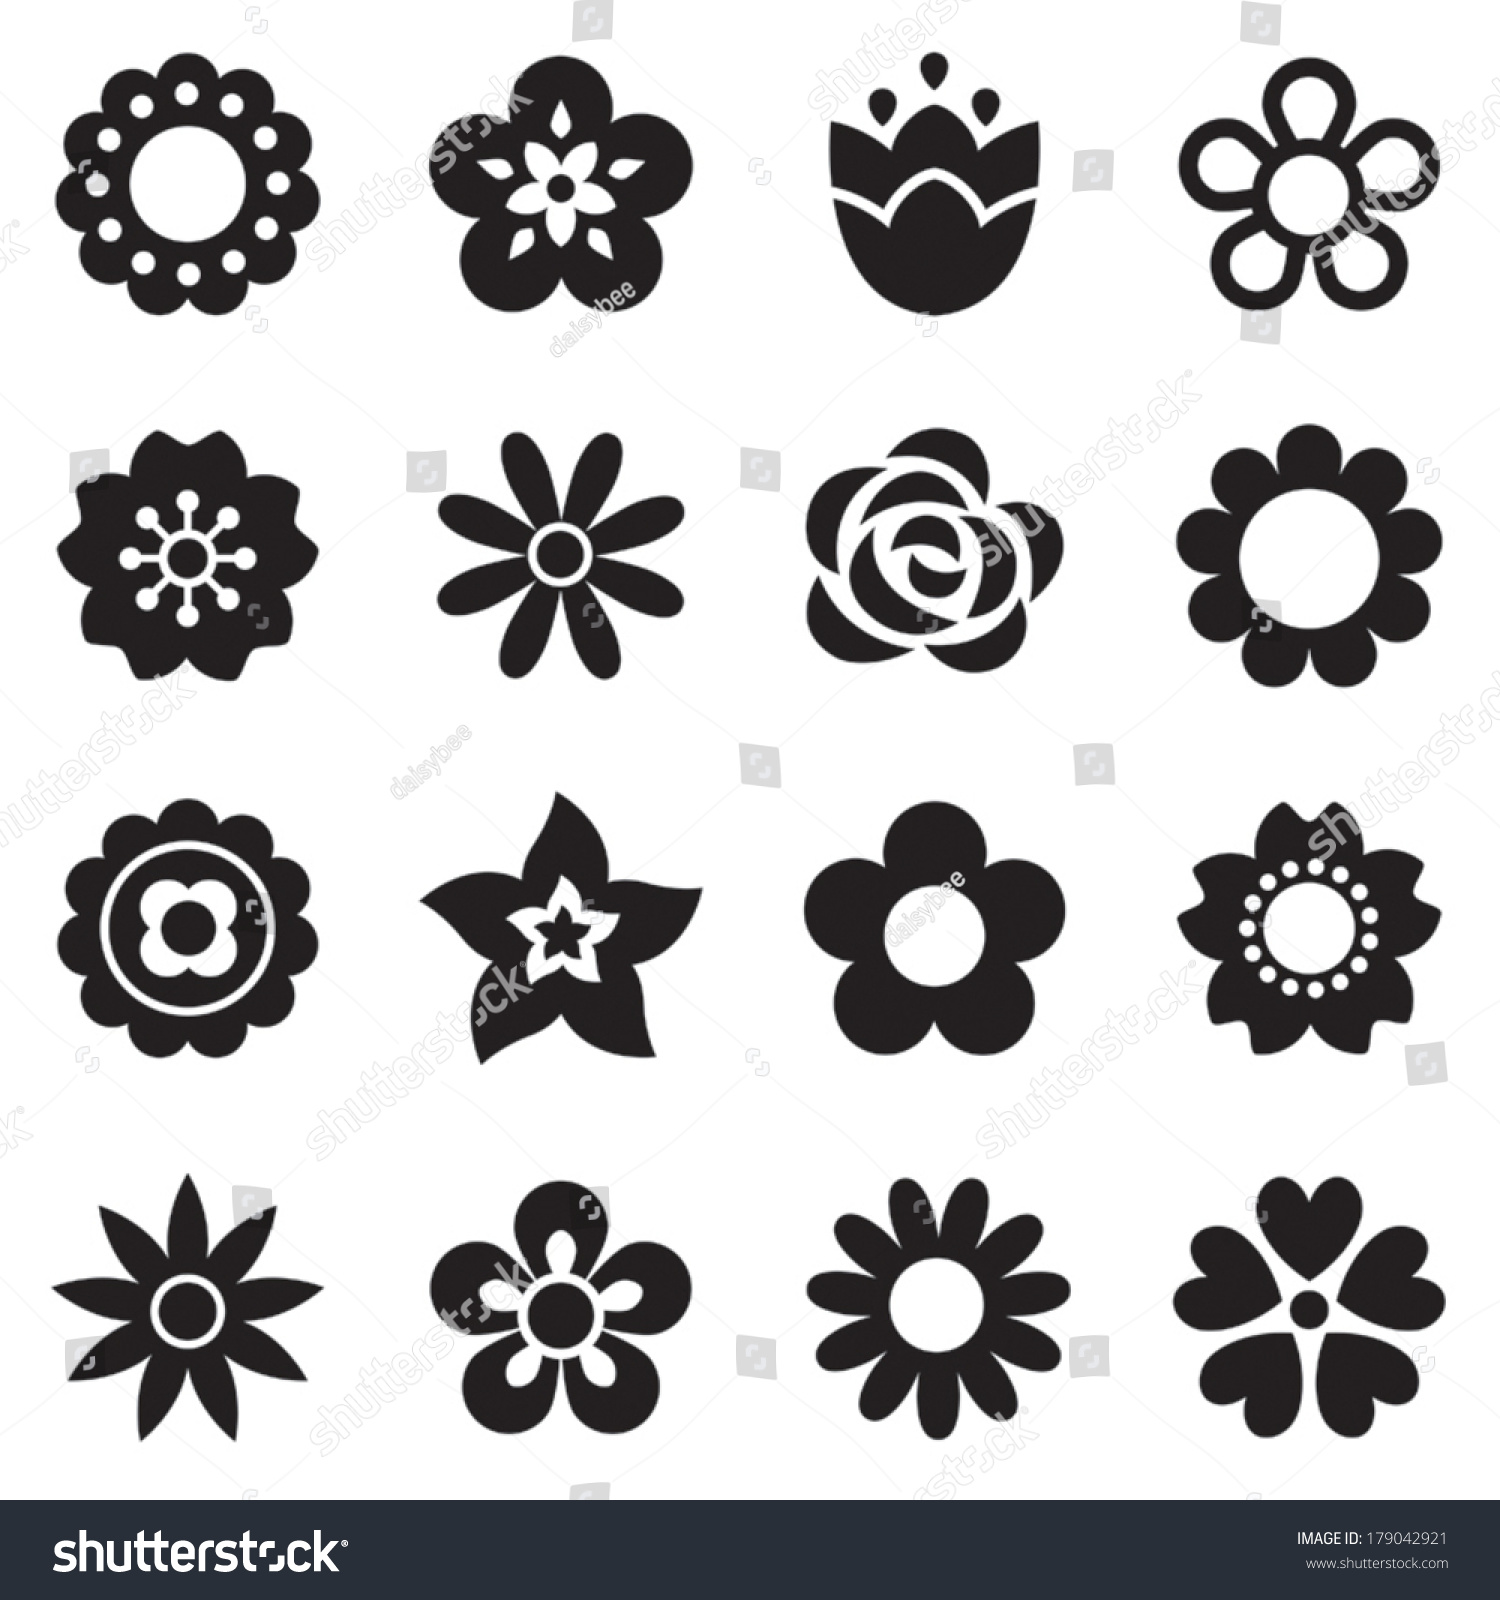 Six Black Flower Design Stock Images: Set Of Flat Flower Icons In Silhouette Isolated On White